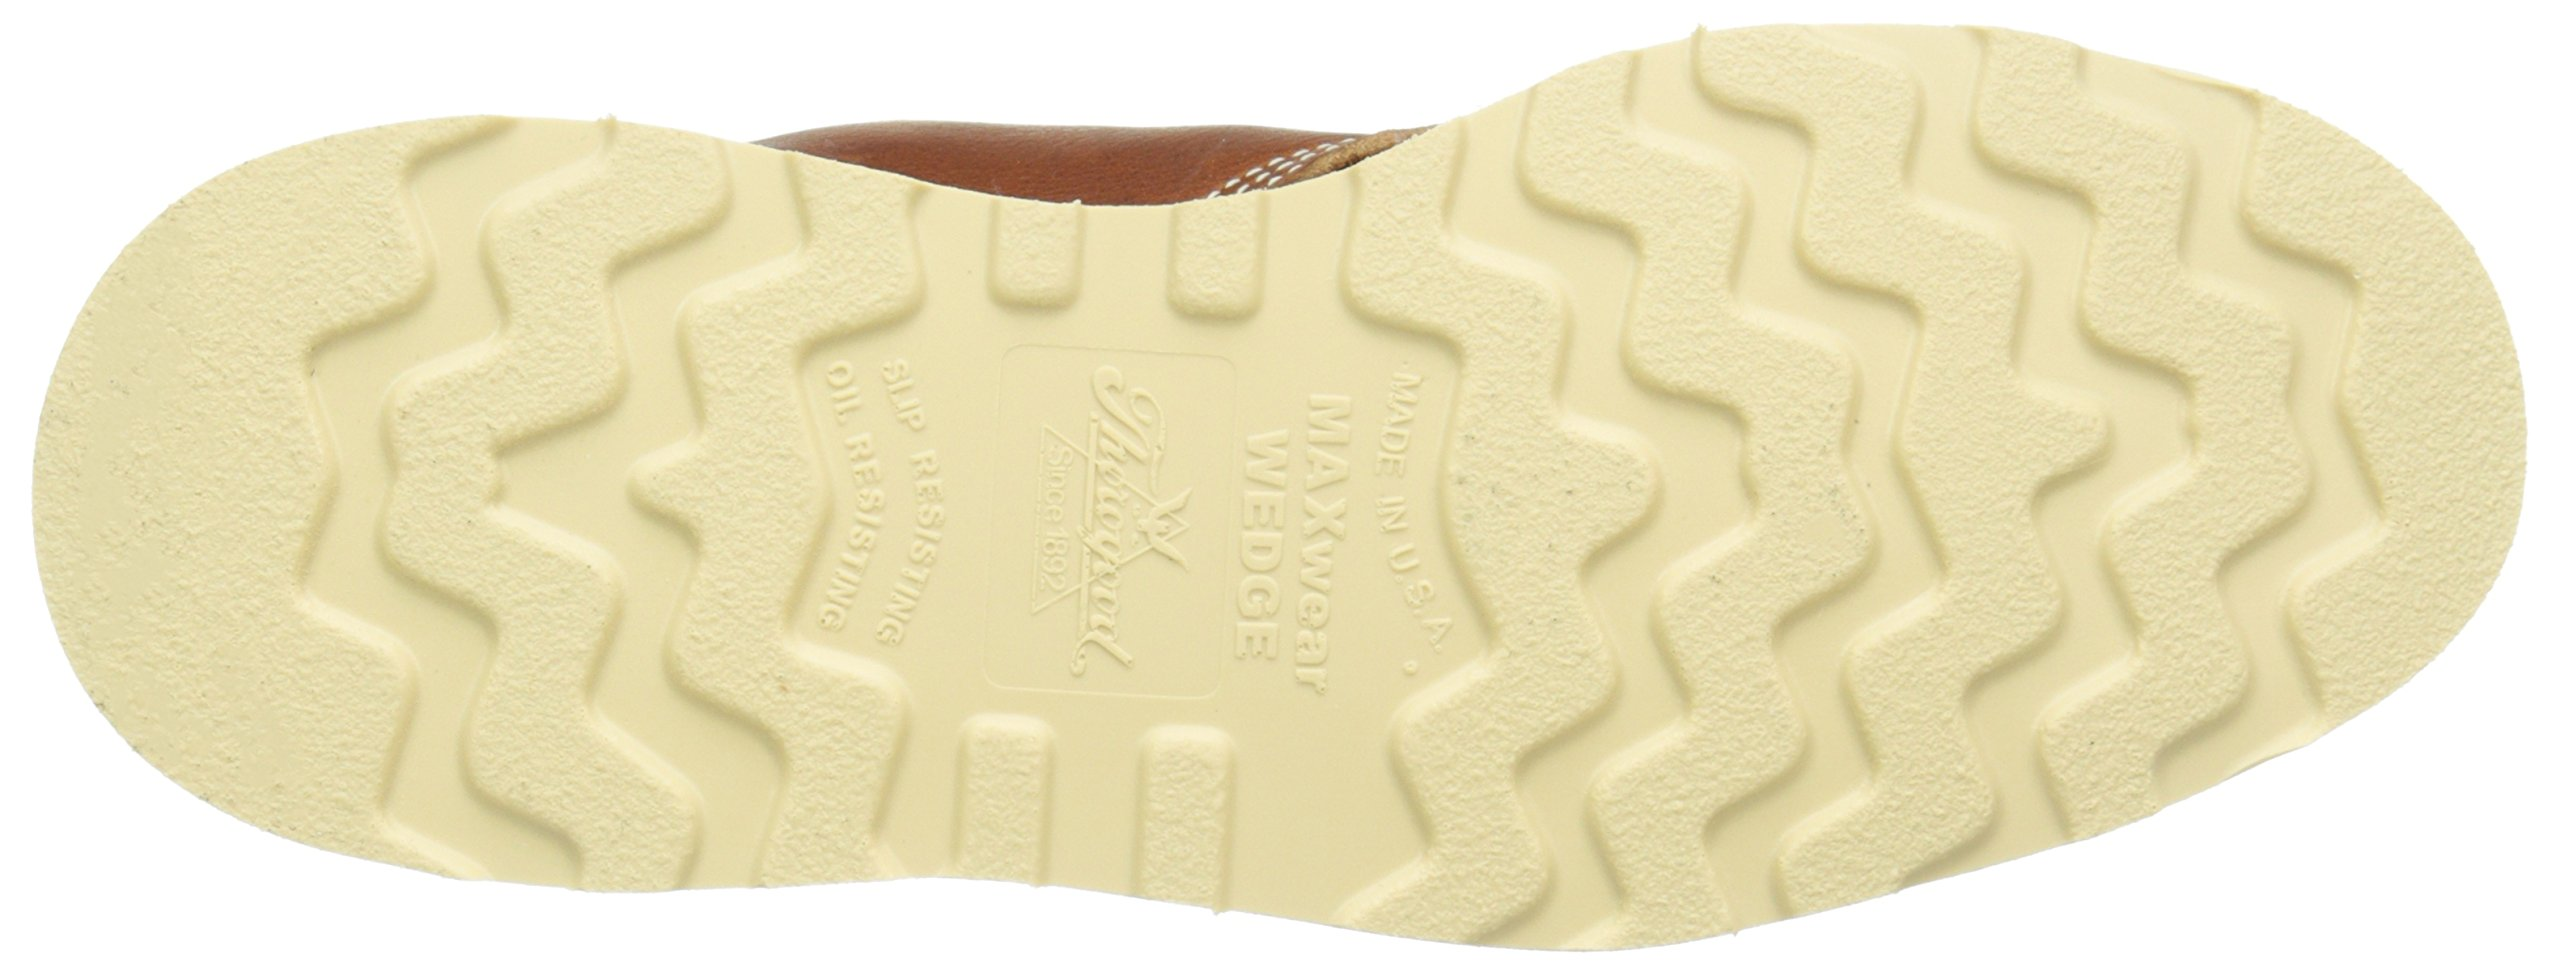 Thorogood-American-Heritage-Men-039-s-6-034-Moc-Toe-Max-Wedge-Non-Safety-Boots thumbnail 22